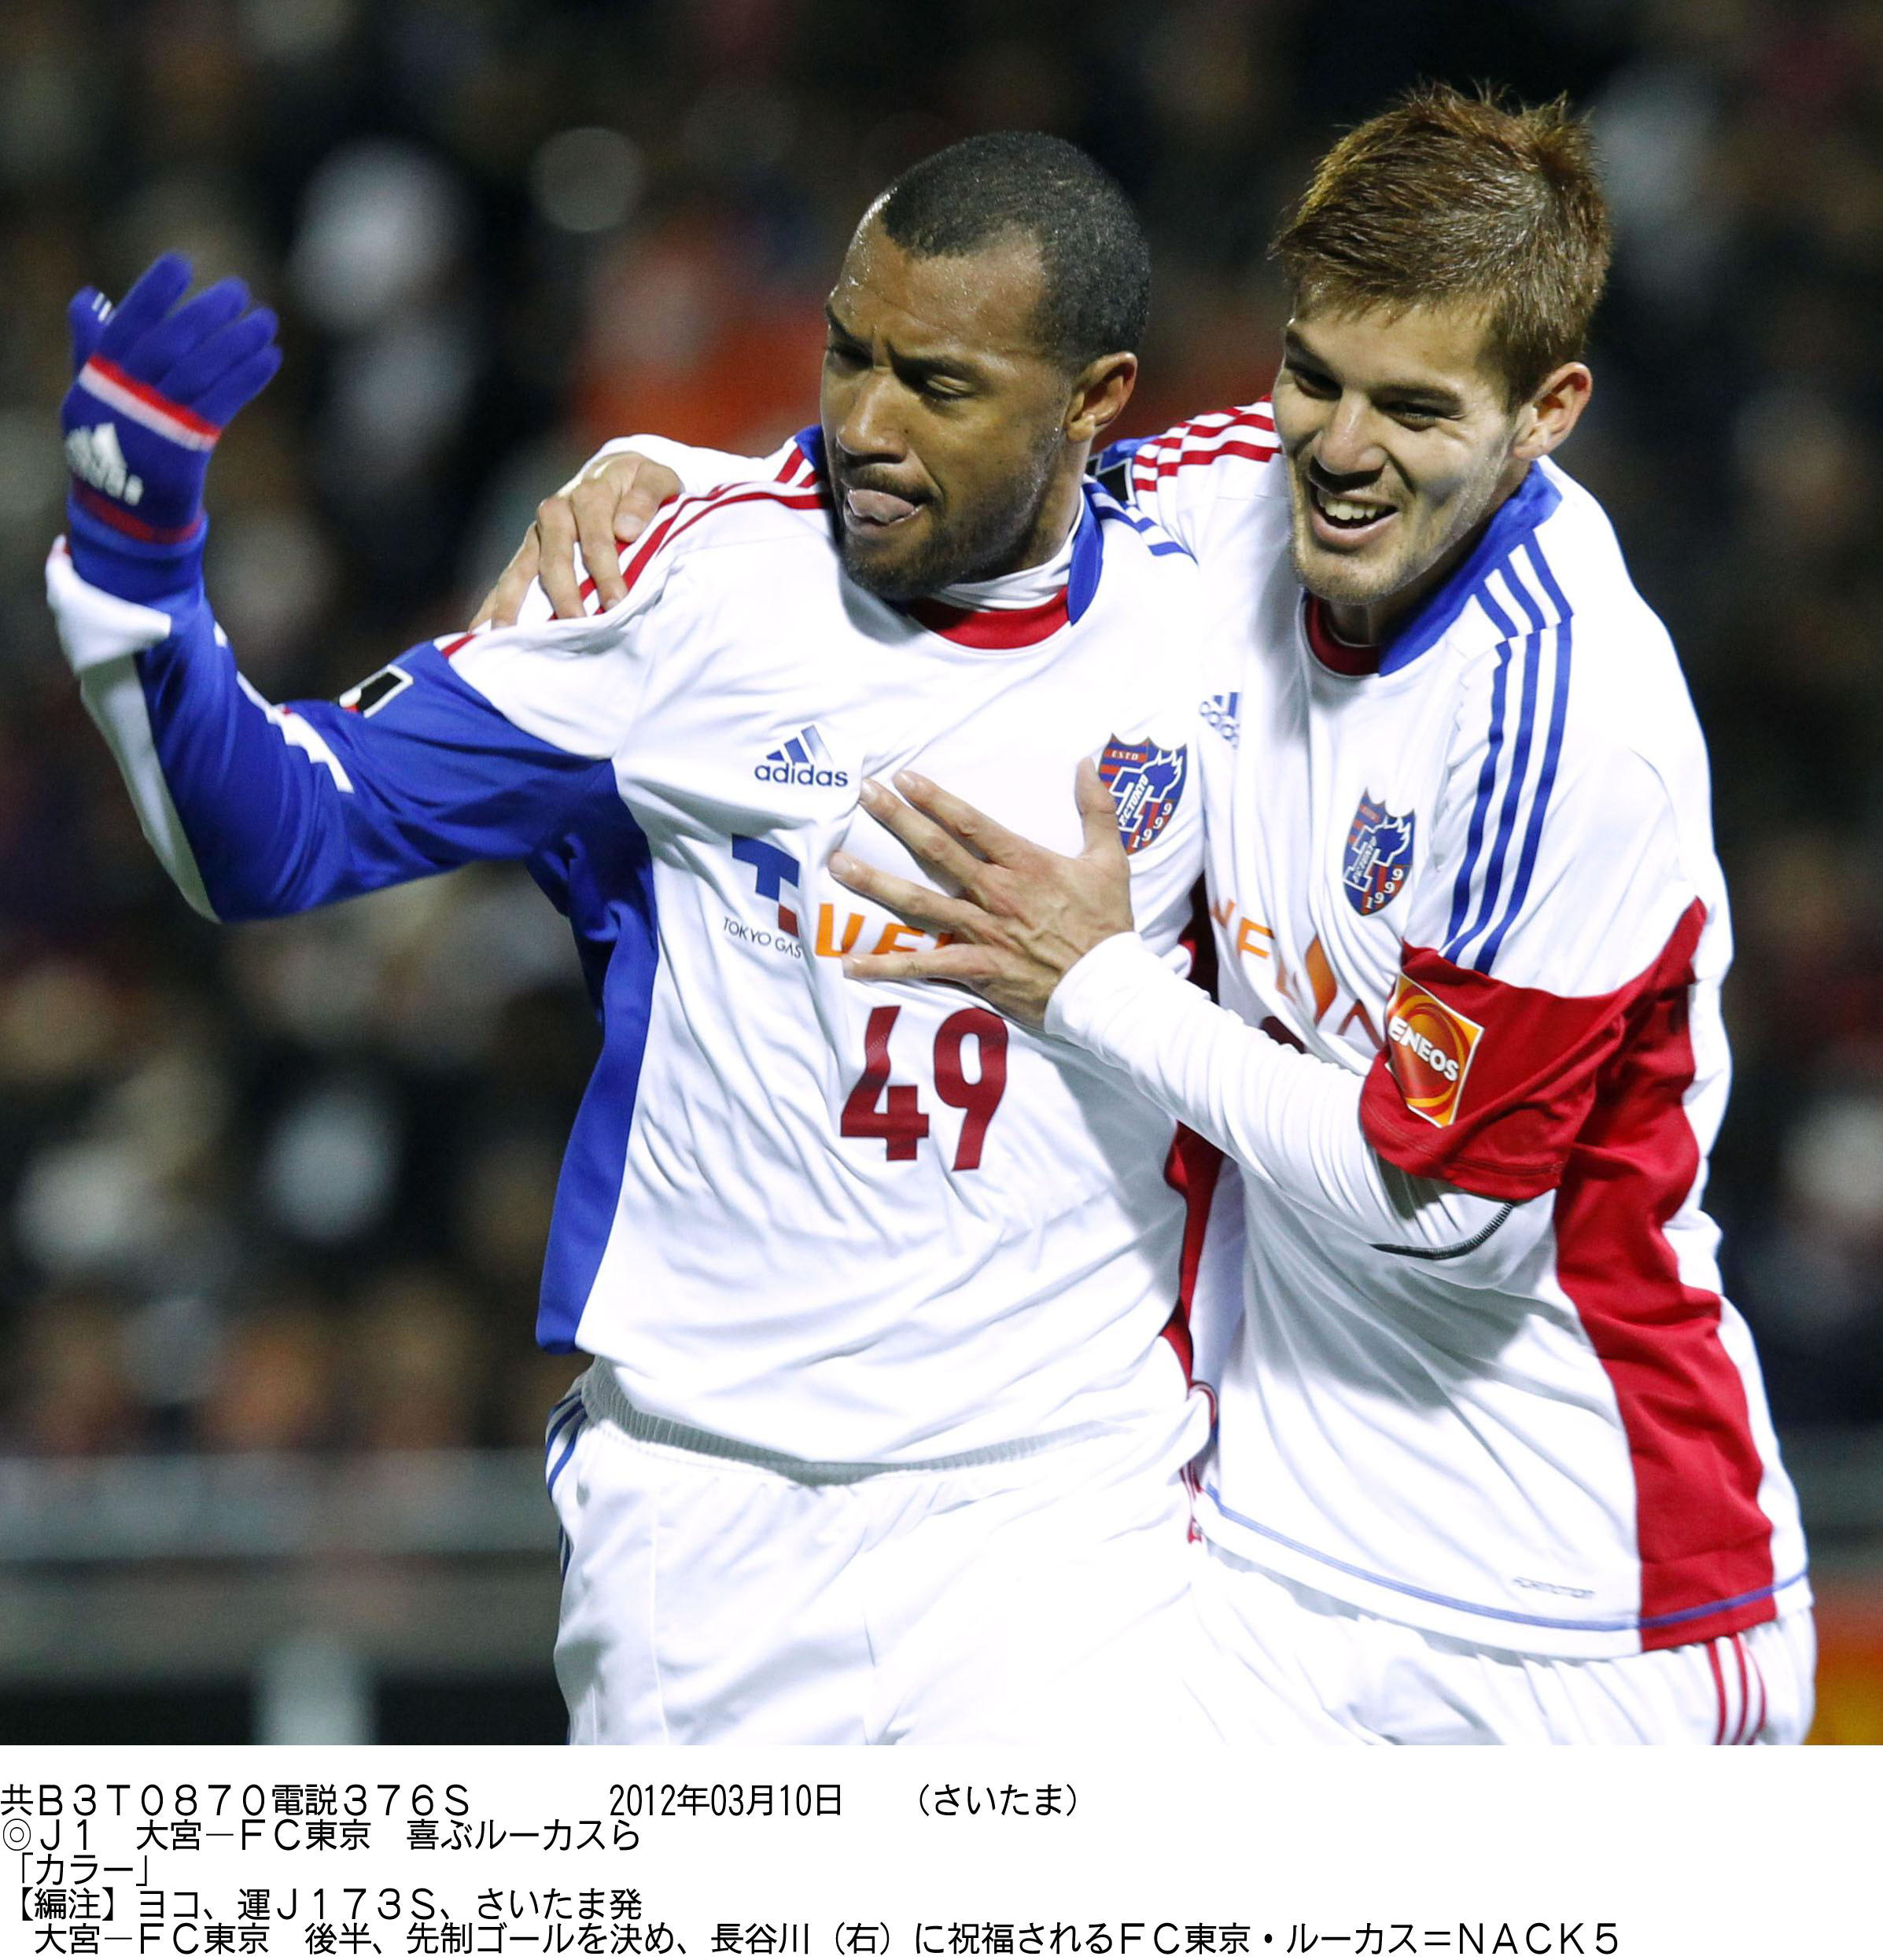 Strong start: FC Tokyo's Ariajasuru Hasegawa (right) celebrates teammate Lucas' 61st-minute goal against Omiya Ardija on Saturday. FC Tokyo won 1-0 in the teams' J. League season opener. | KYODO